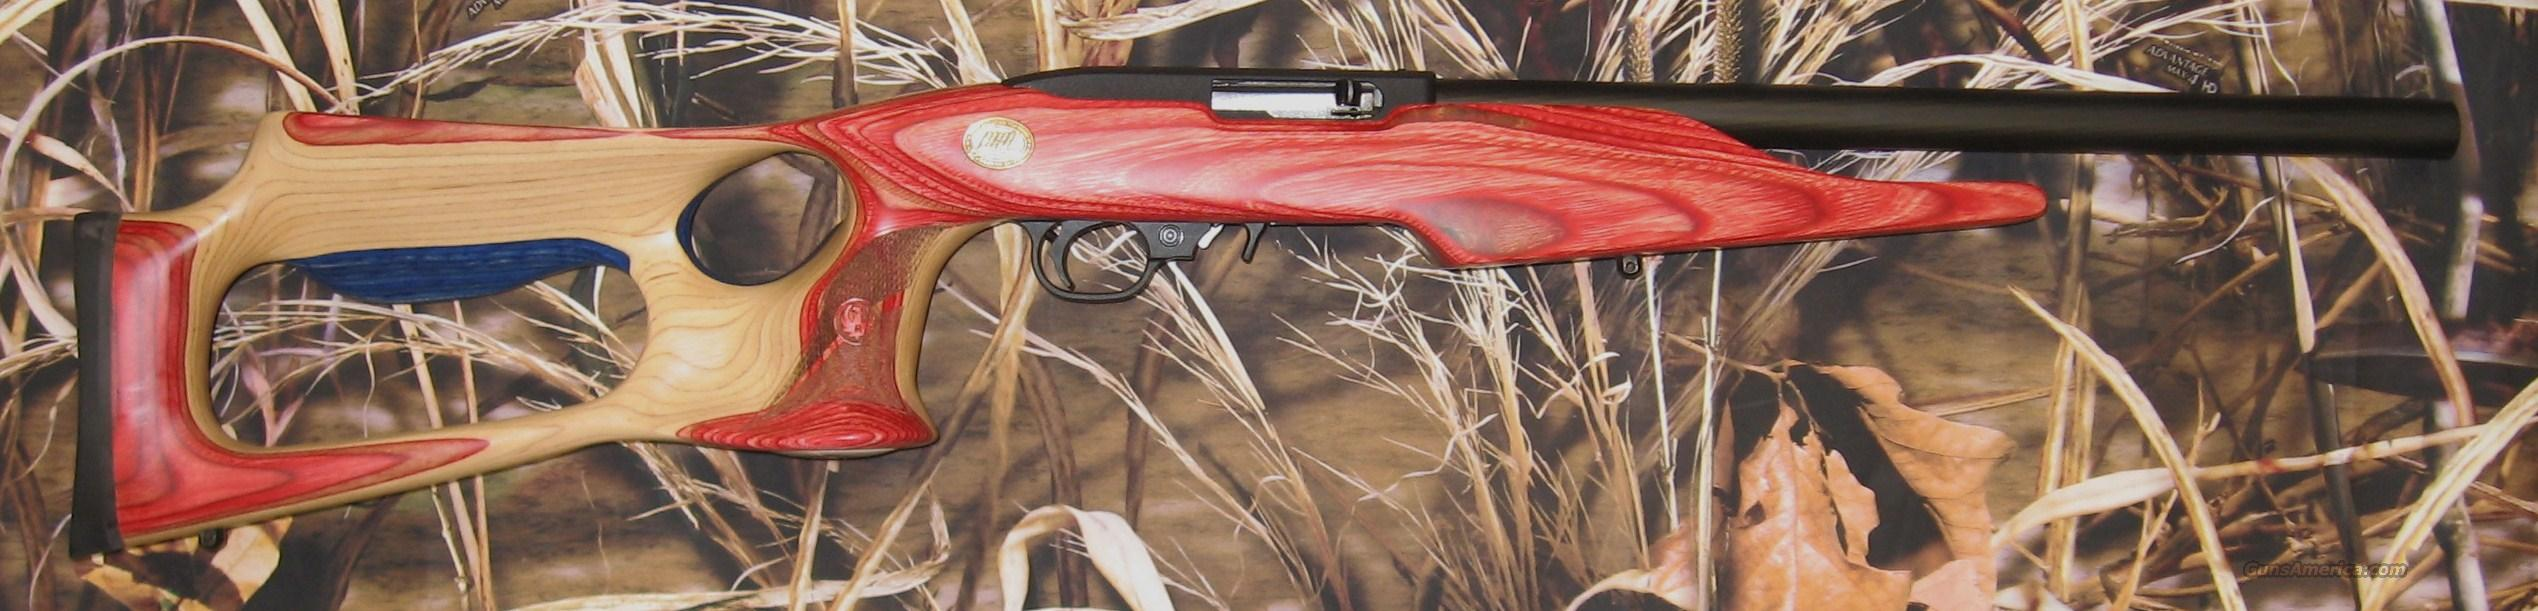 Ruger USA Shooting Team 10/22   Guns > Rifles > Ruger Rifles > 10-22